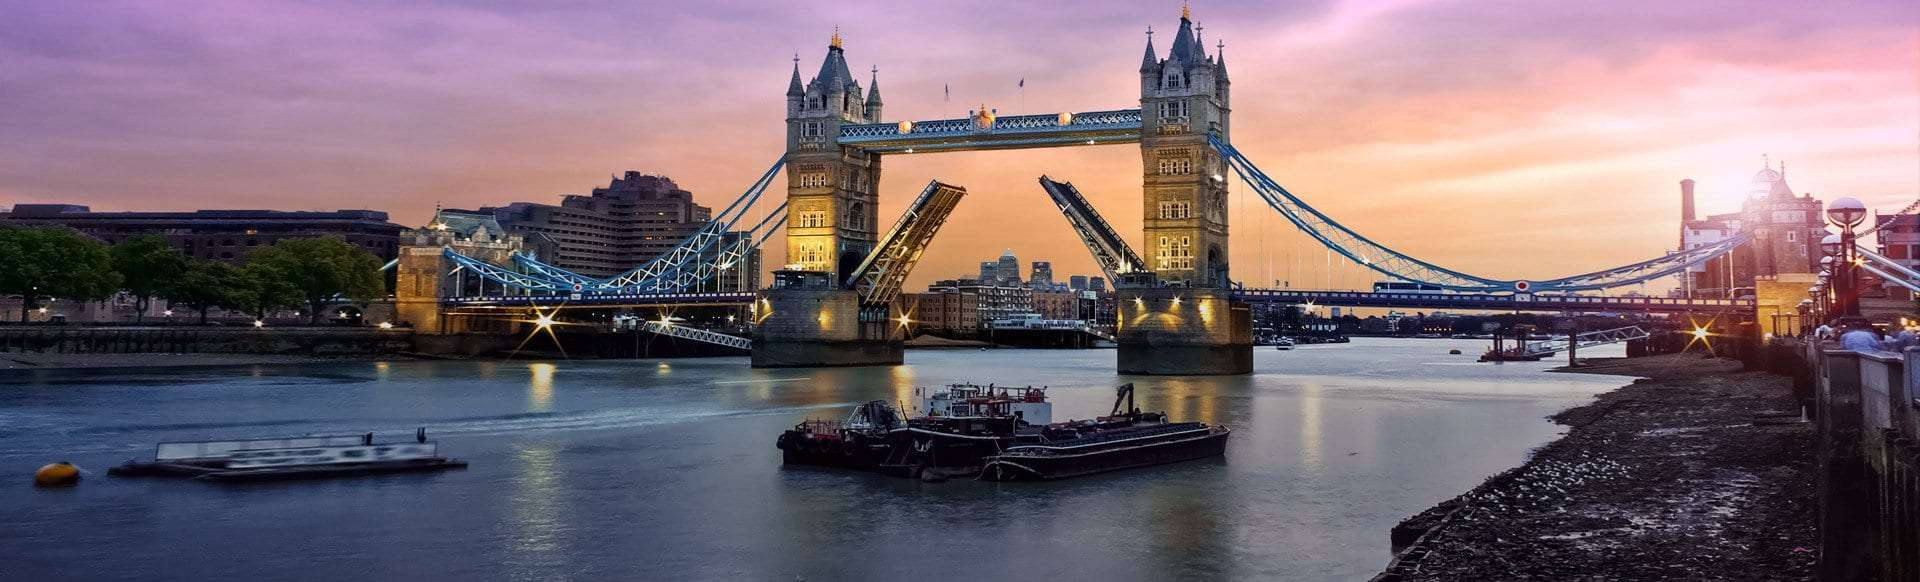 tower bridge homepage image